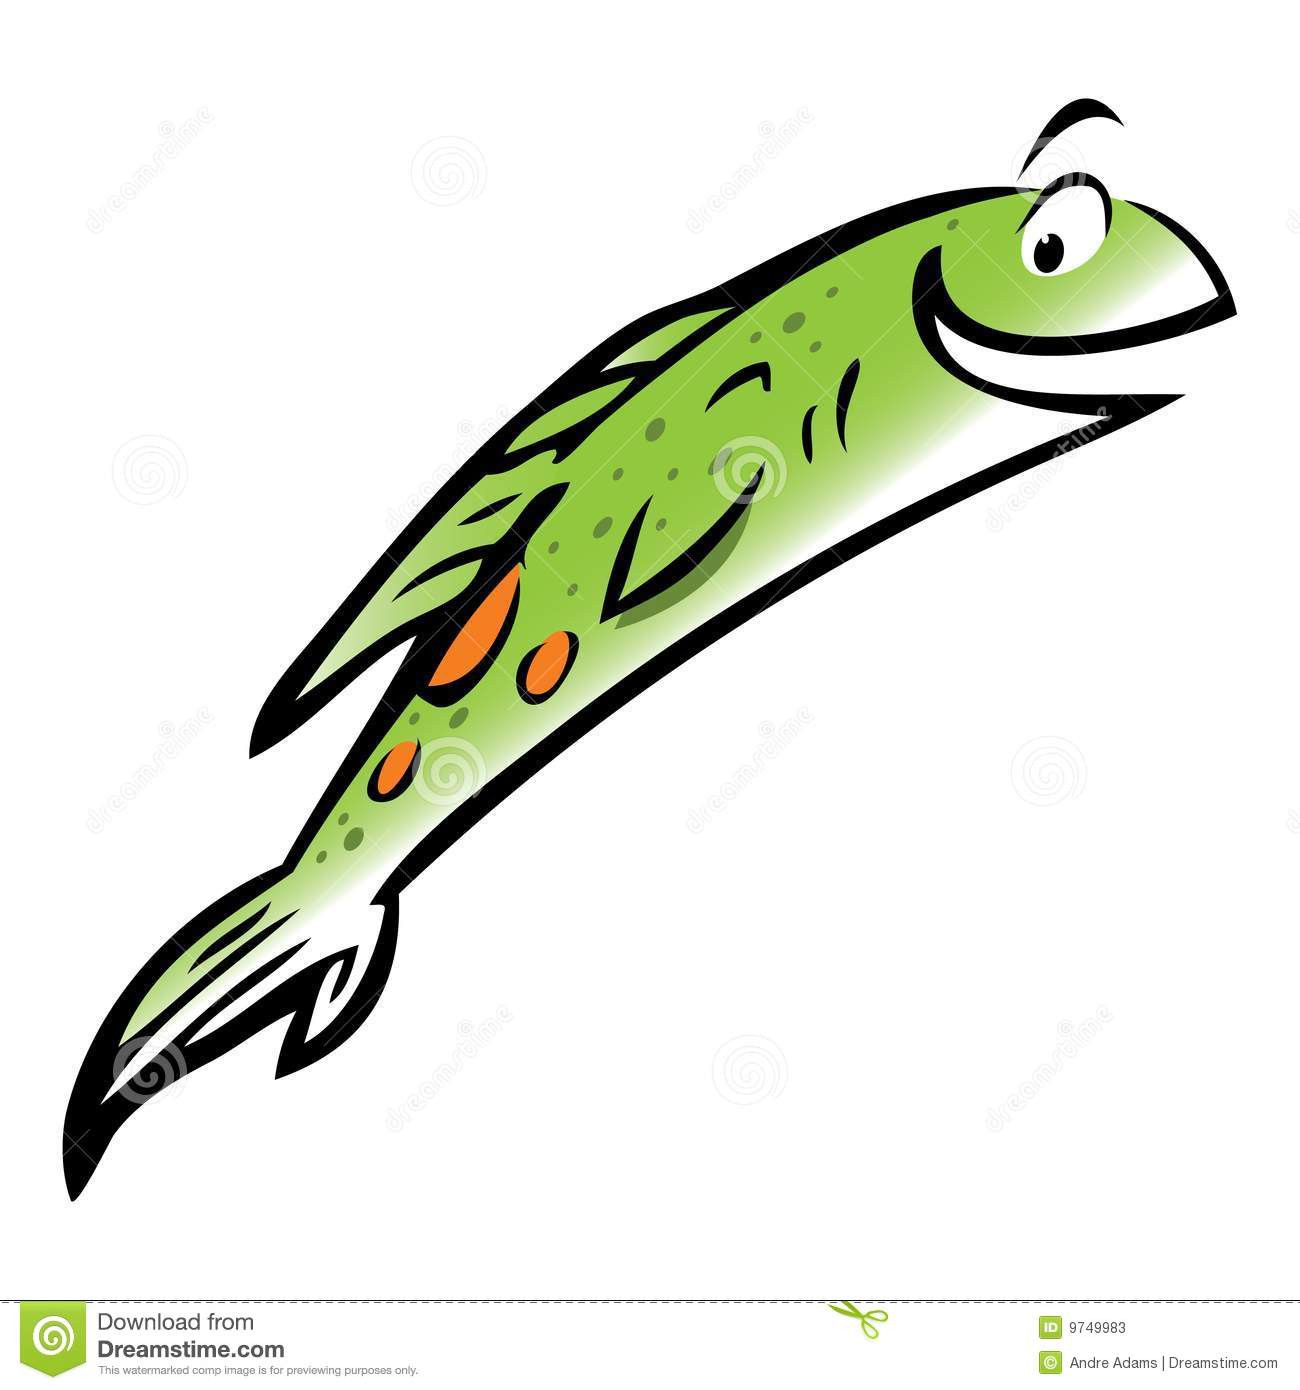 Salmon Clipart at GetDrawings.com | Free for personal use Salmon ...